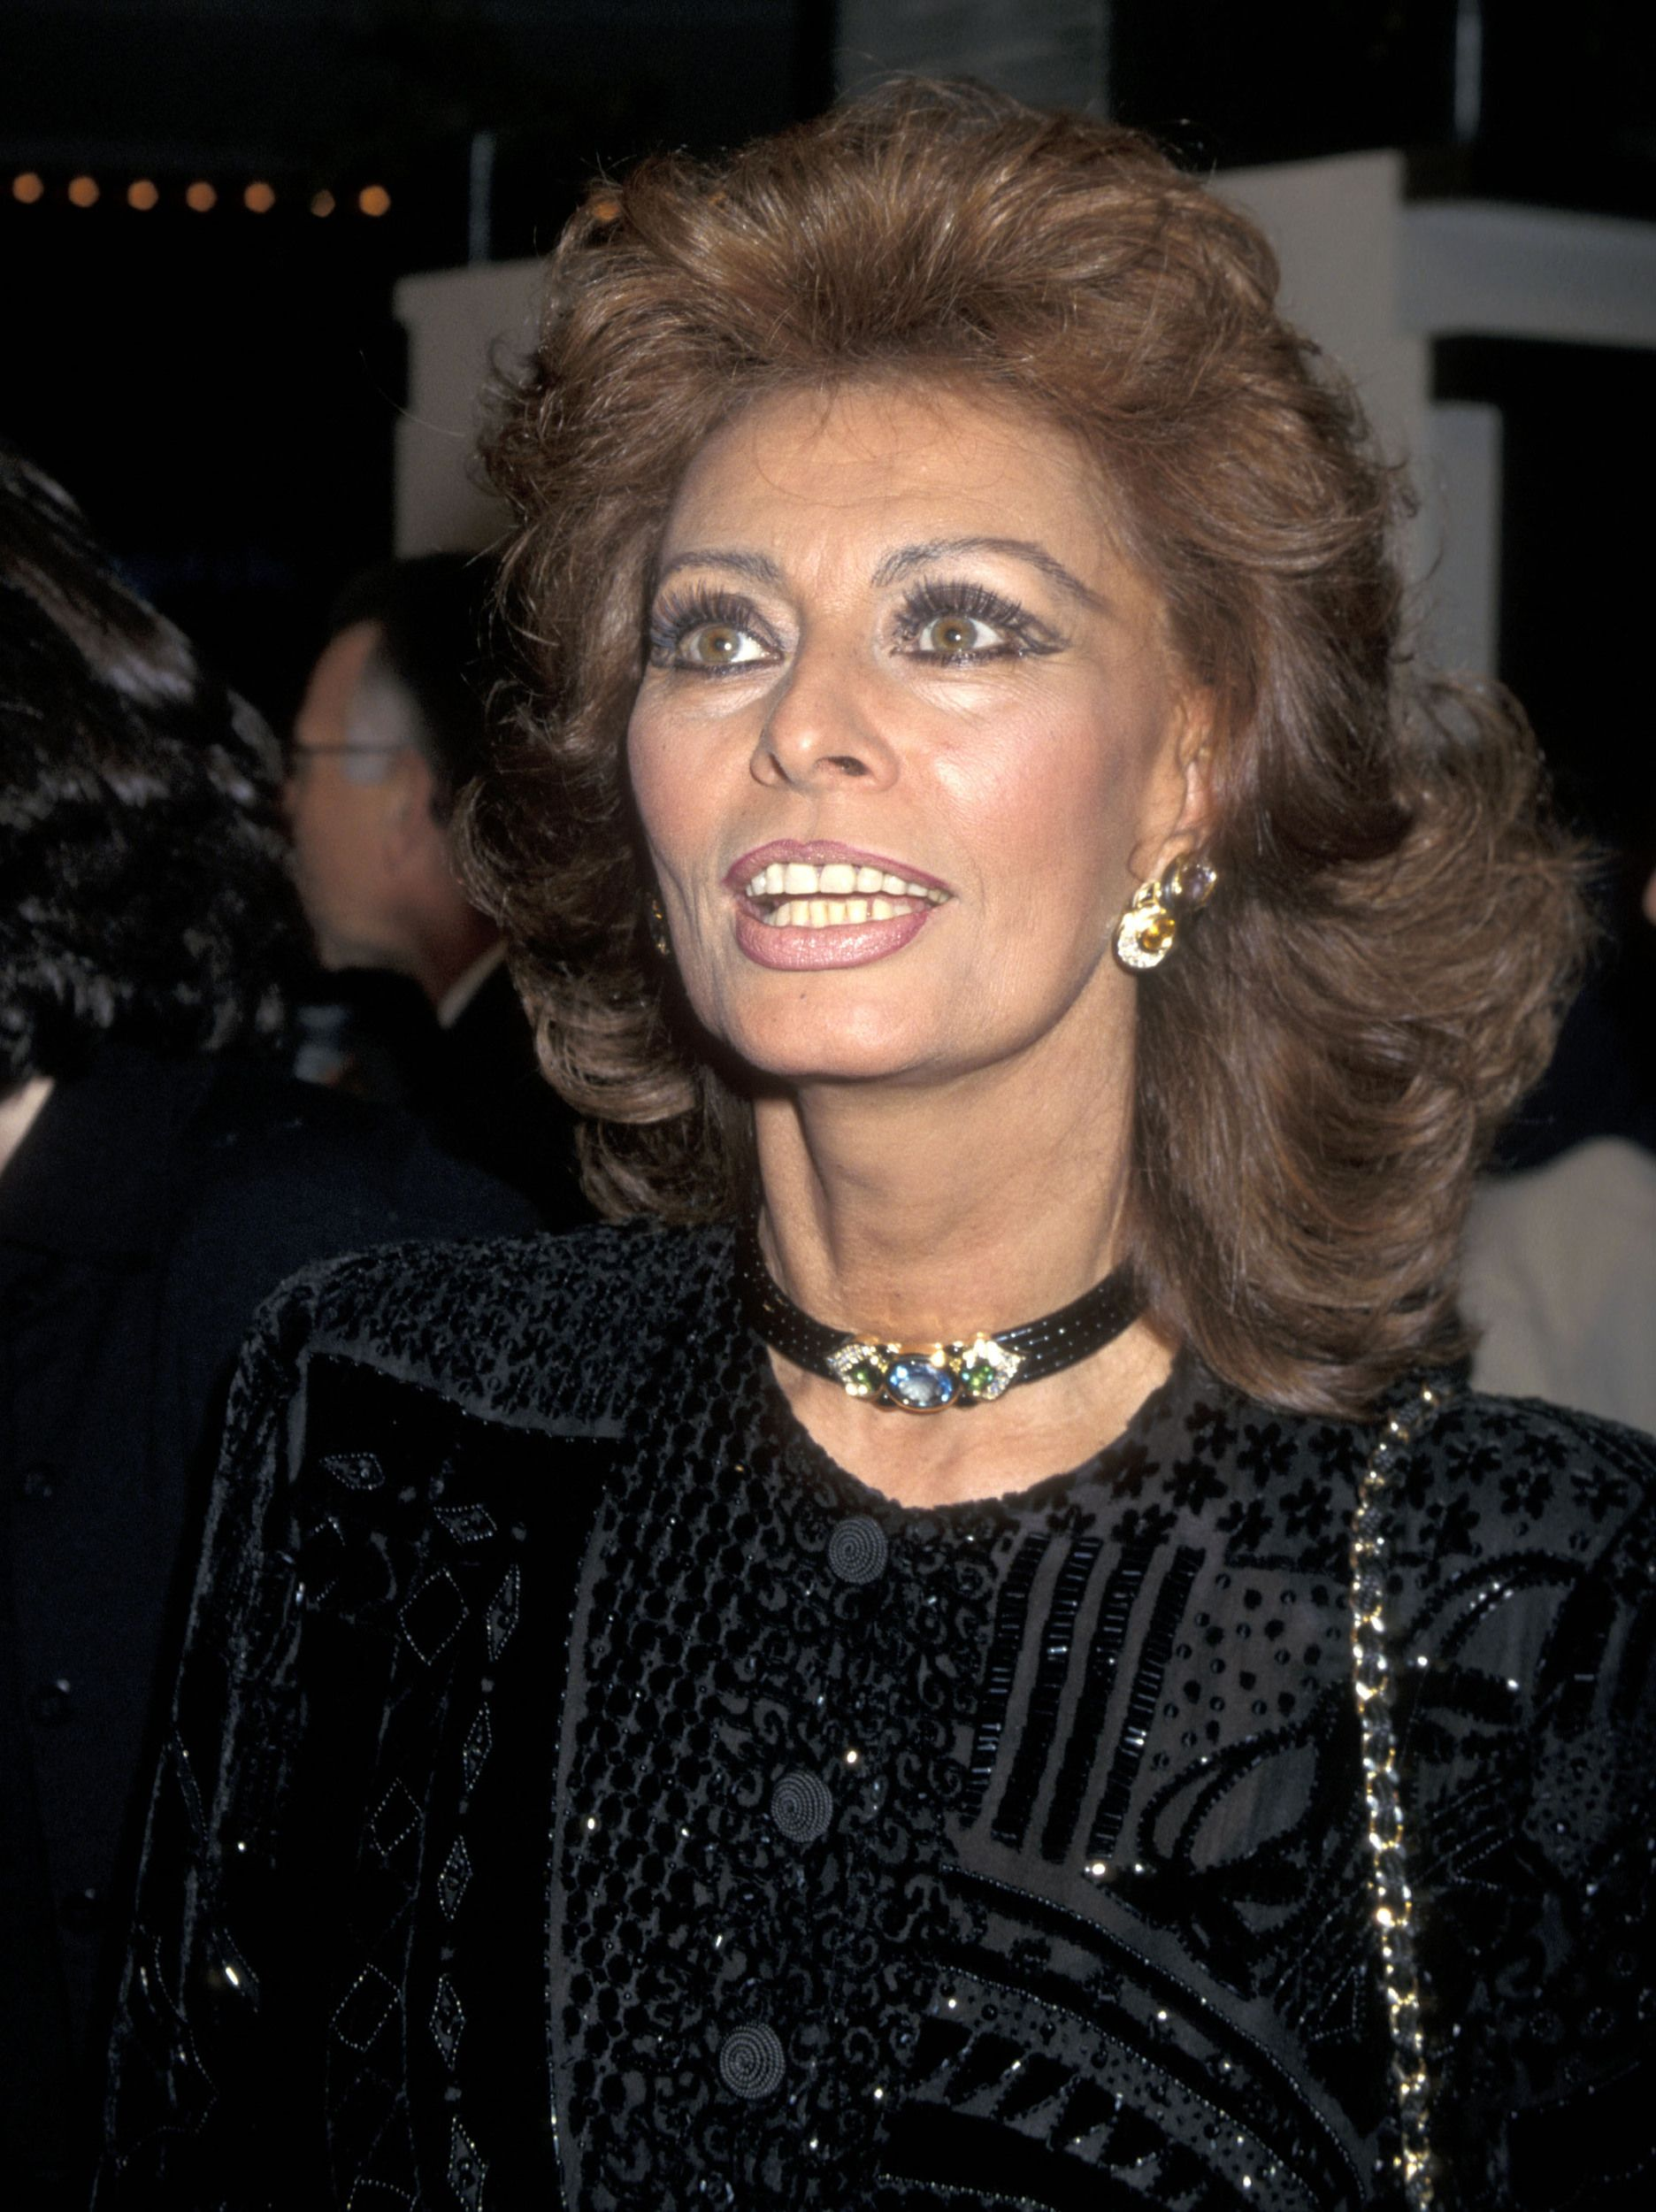 Sophia Loren Then And Now Sophia Loren Sofia Loren Italian Actress